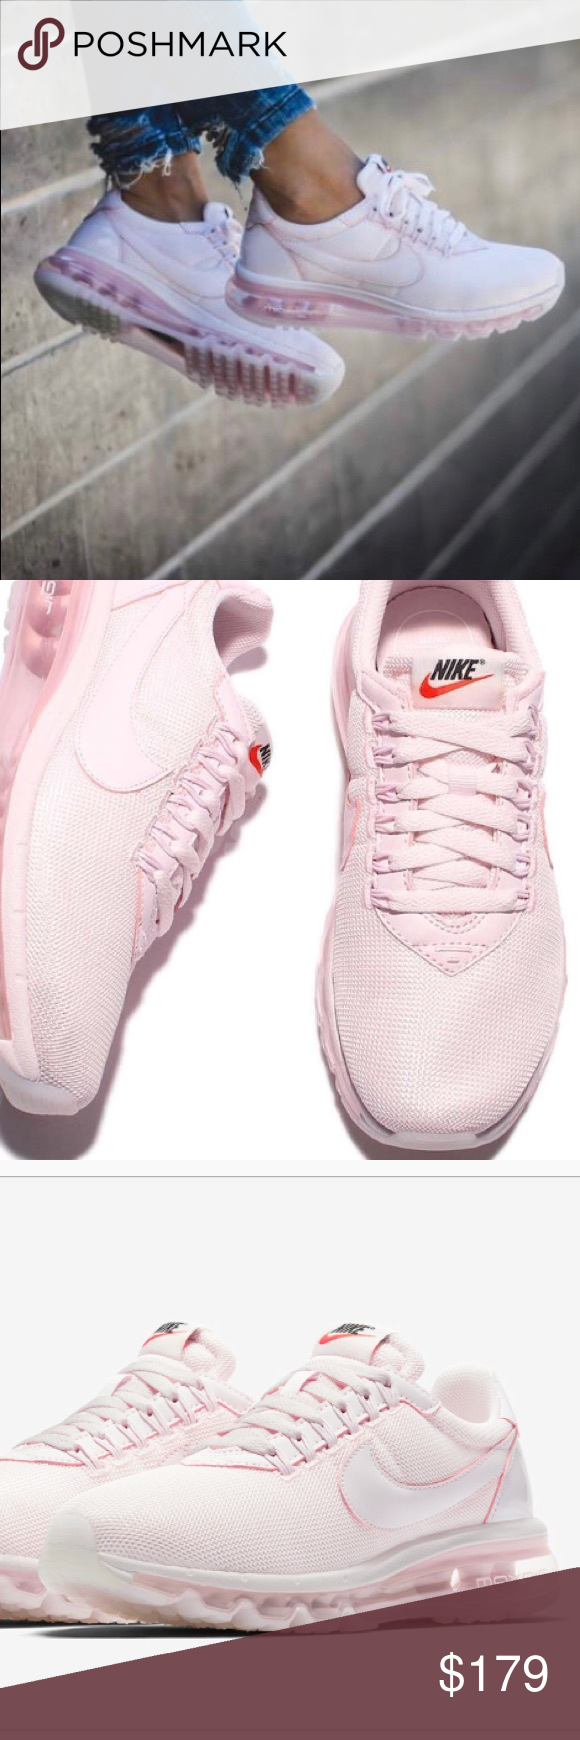 92e166cba9 NWT💕Nike Air Max LD-Zero SE Pearl Pink Brand new in box. Price is firm.  Special edition shoe released for Air Max day (3/26). Half old-school  style, ...